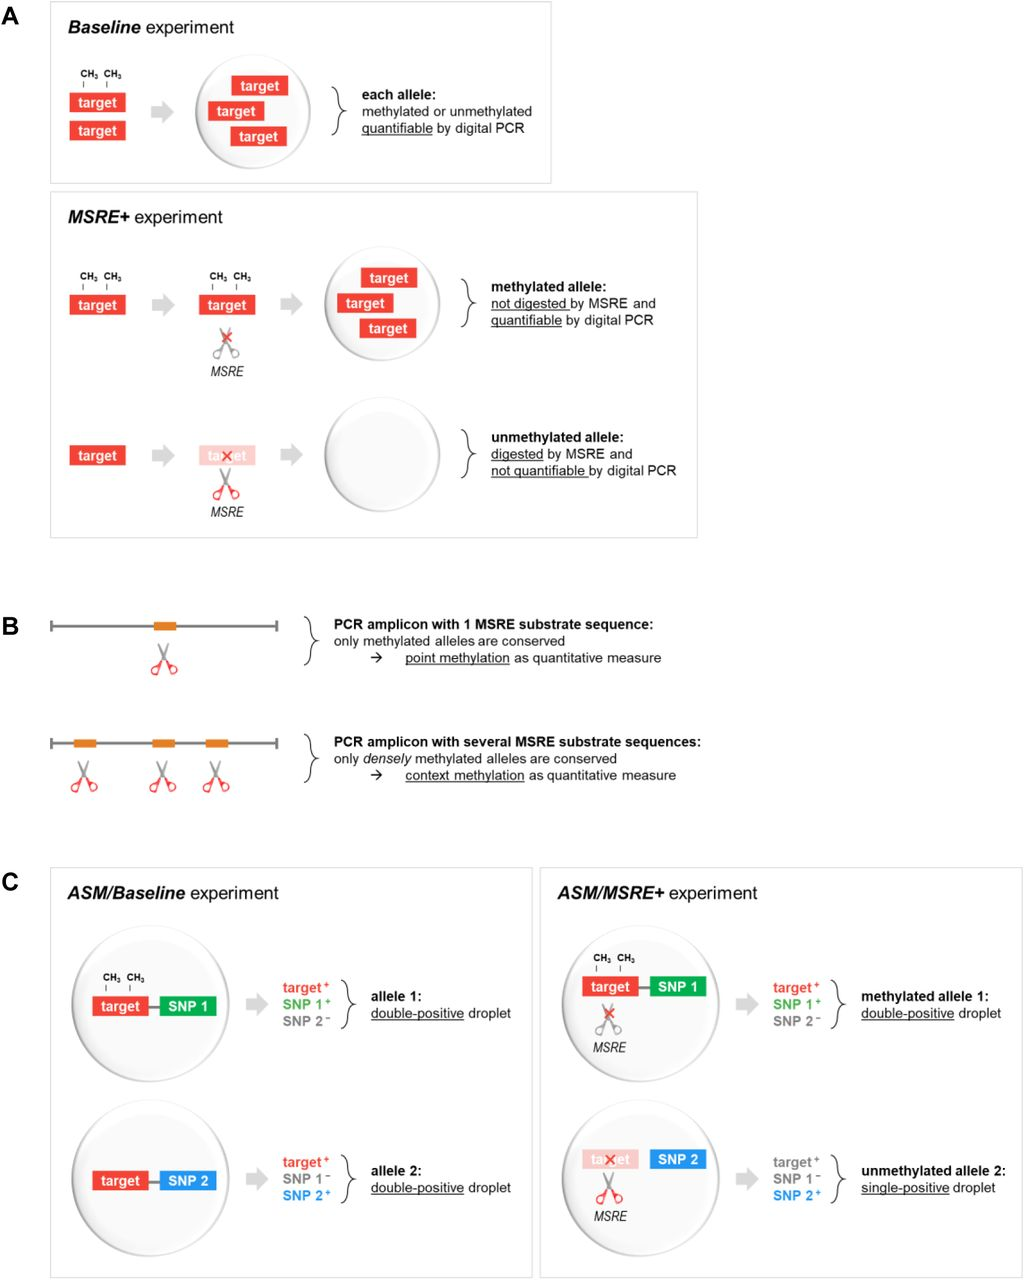 Concept of quantifying DNA methylation using MSRE and digital PCR. ( A ) A MSRE incubation of a DNA sample results in the digestion of unmethylated fragments by the MSRE, whereas methylated sequences remain intact. To calculate the fraction methylated alleles, the MSRE digestion is measured in two separate duplex digital PCR experiments: one Baseline experiment measuring the initial presence of target of interest, and one MSRE+ experiment measuring the presence after MSRE digestion. ( B ) The density of DNA methylation can be integrated in the quantification by the selection of PCR amplicon and MSRE. ( C ) A methylation marker may be measured in combination with a linked genetic marker (i.e. a heterozygous SNP) to determine the allele-specificity. As intact alleles (with both the methylation target and one of the SNP variants) will end up in one digital PCR partition (i.e. droplet), a double-positive signal will be measured. After MSRE digestion within the droplet, unmethylated target will be digested, leading to single-positive signals, while methylated targets are conserved and still result in double-positive signals.